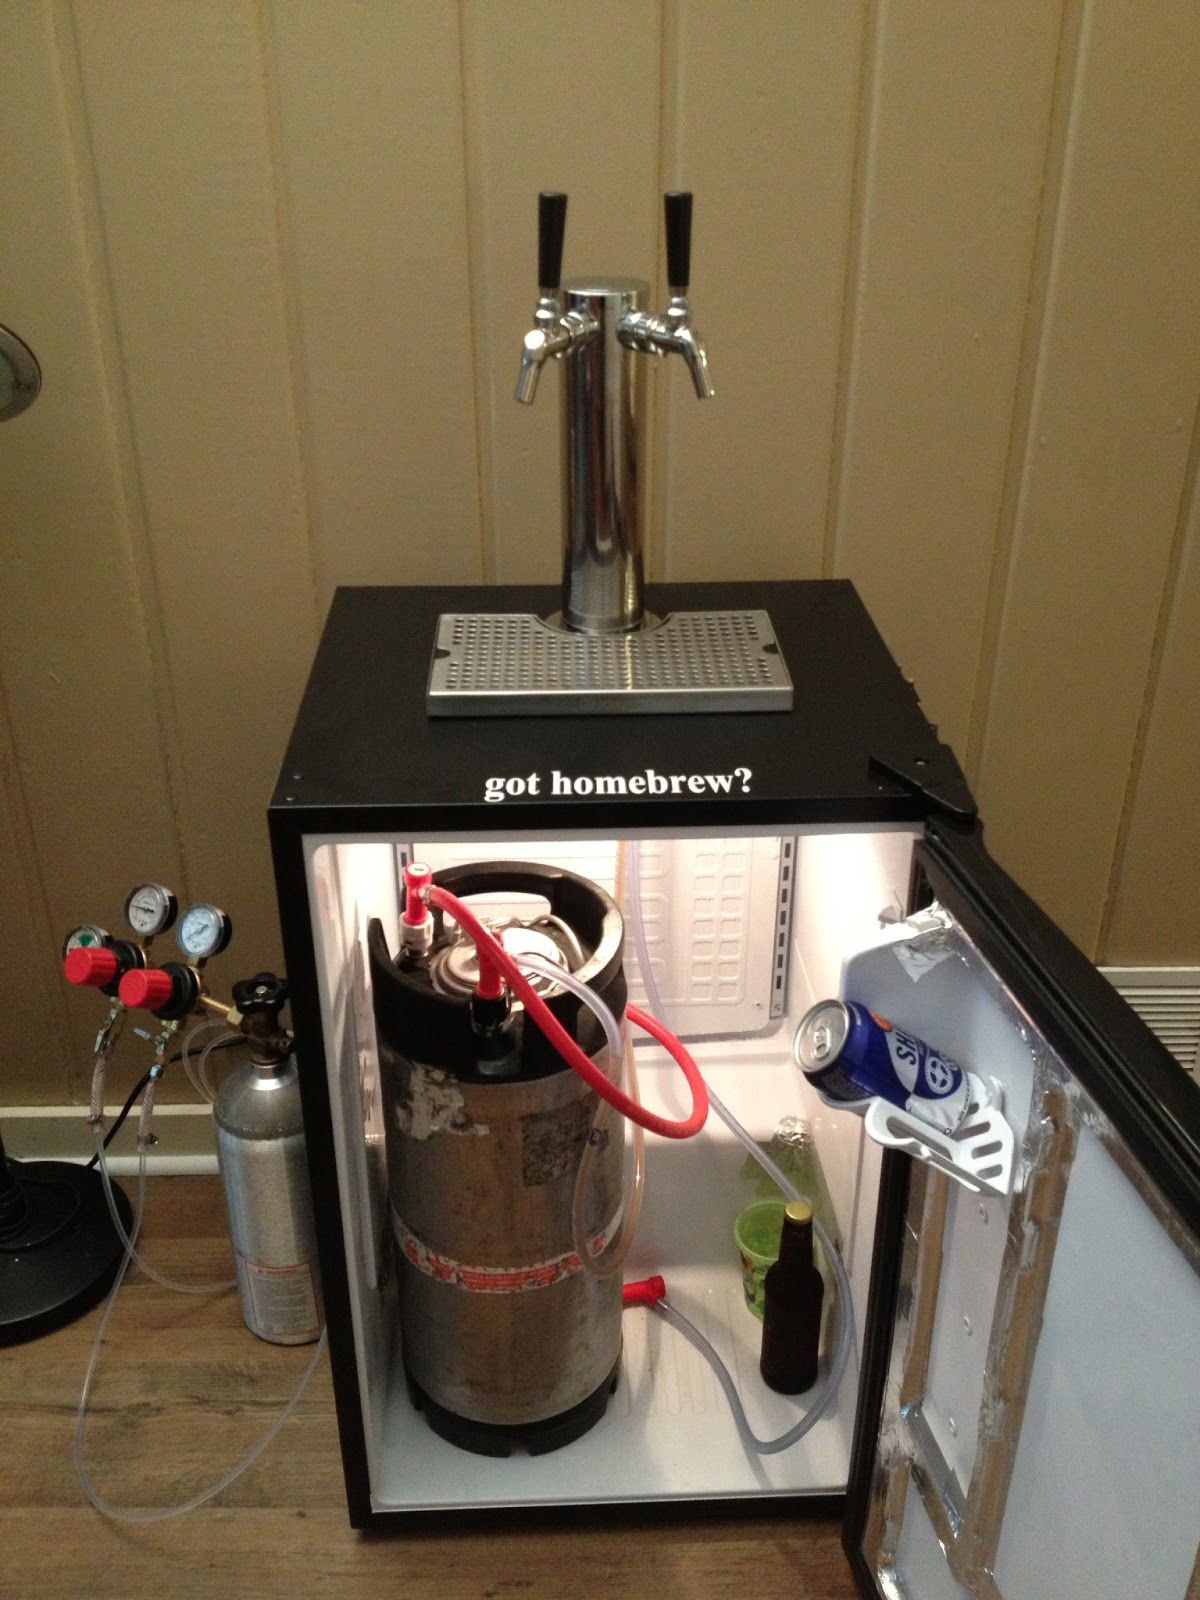 so i decided to build a kegerator after i saw how easy it was to